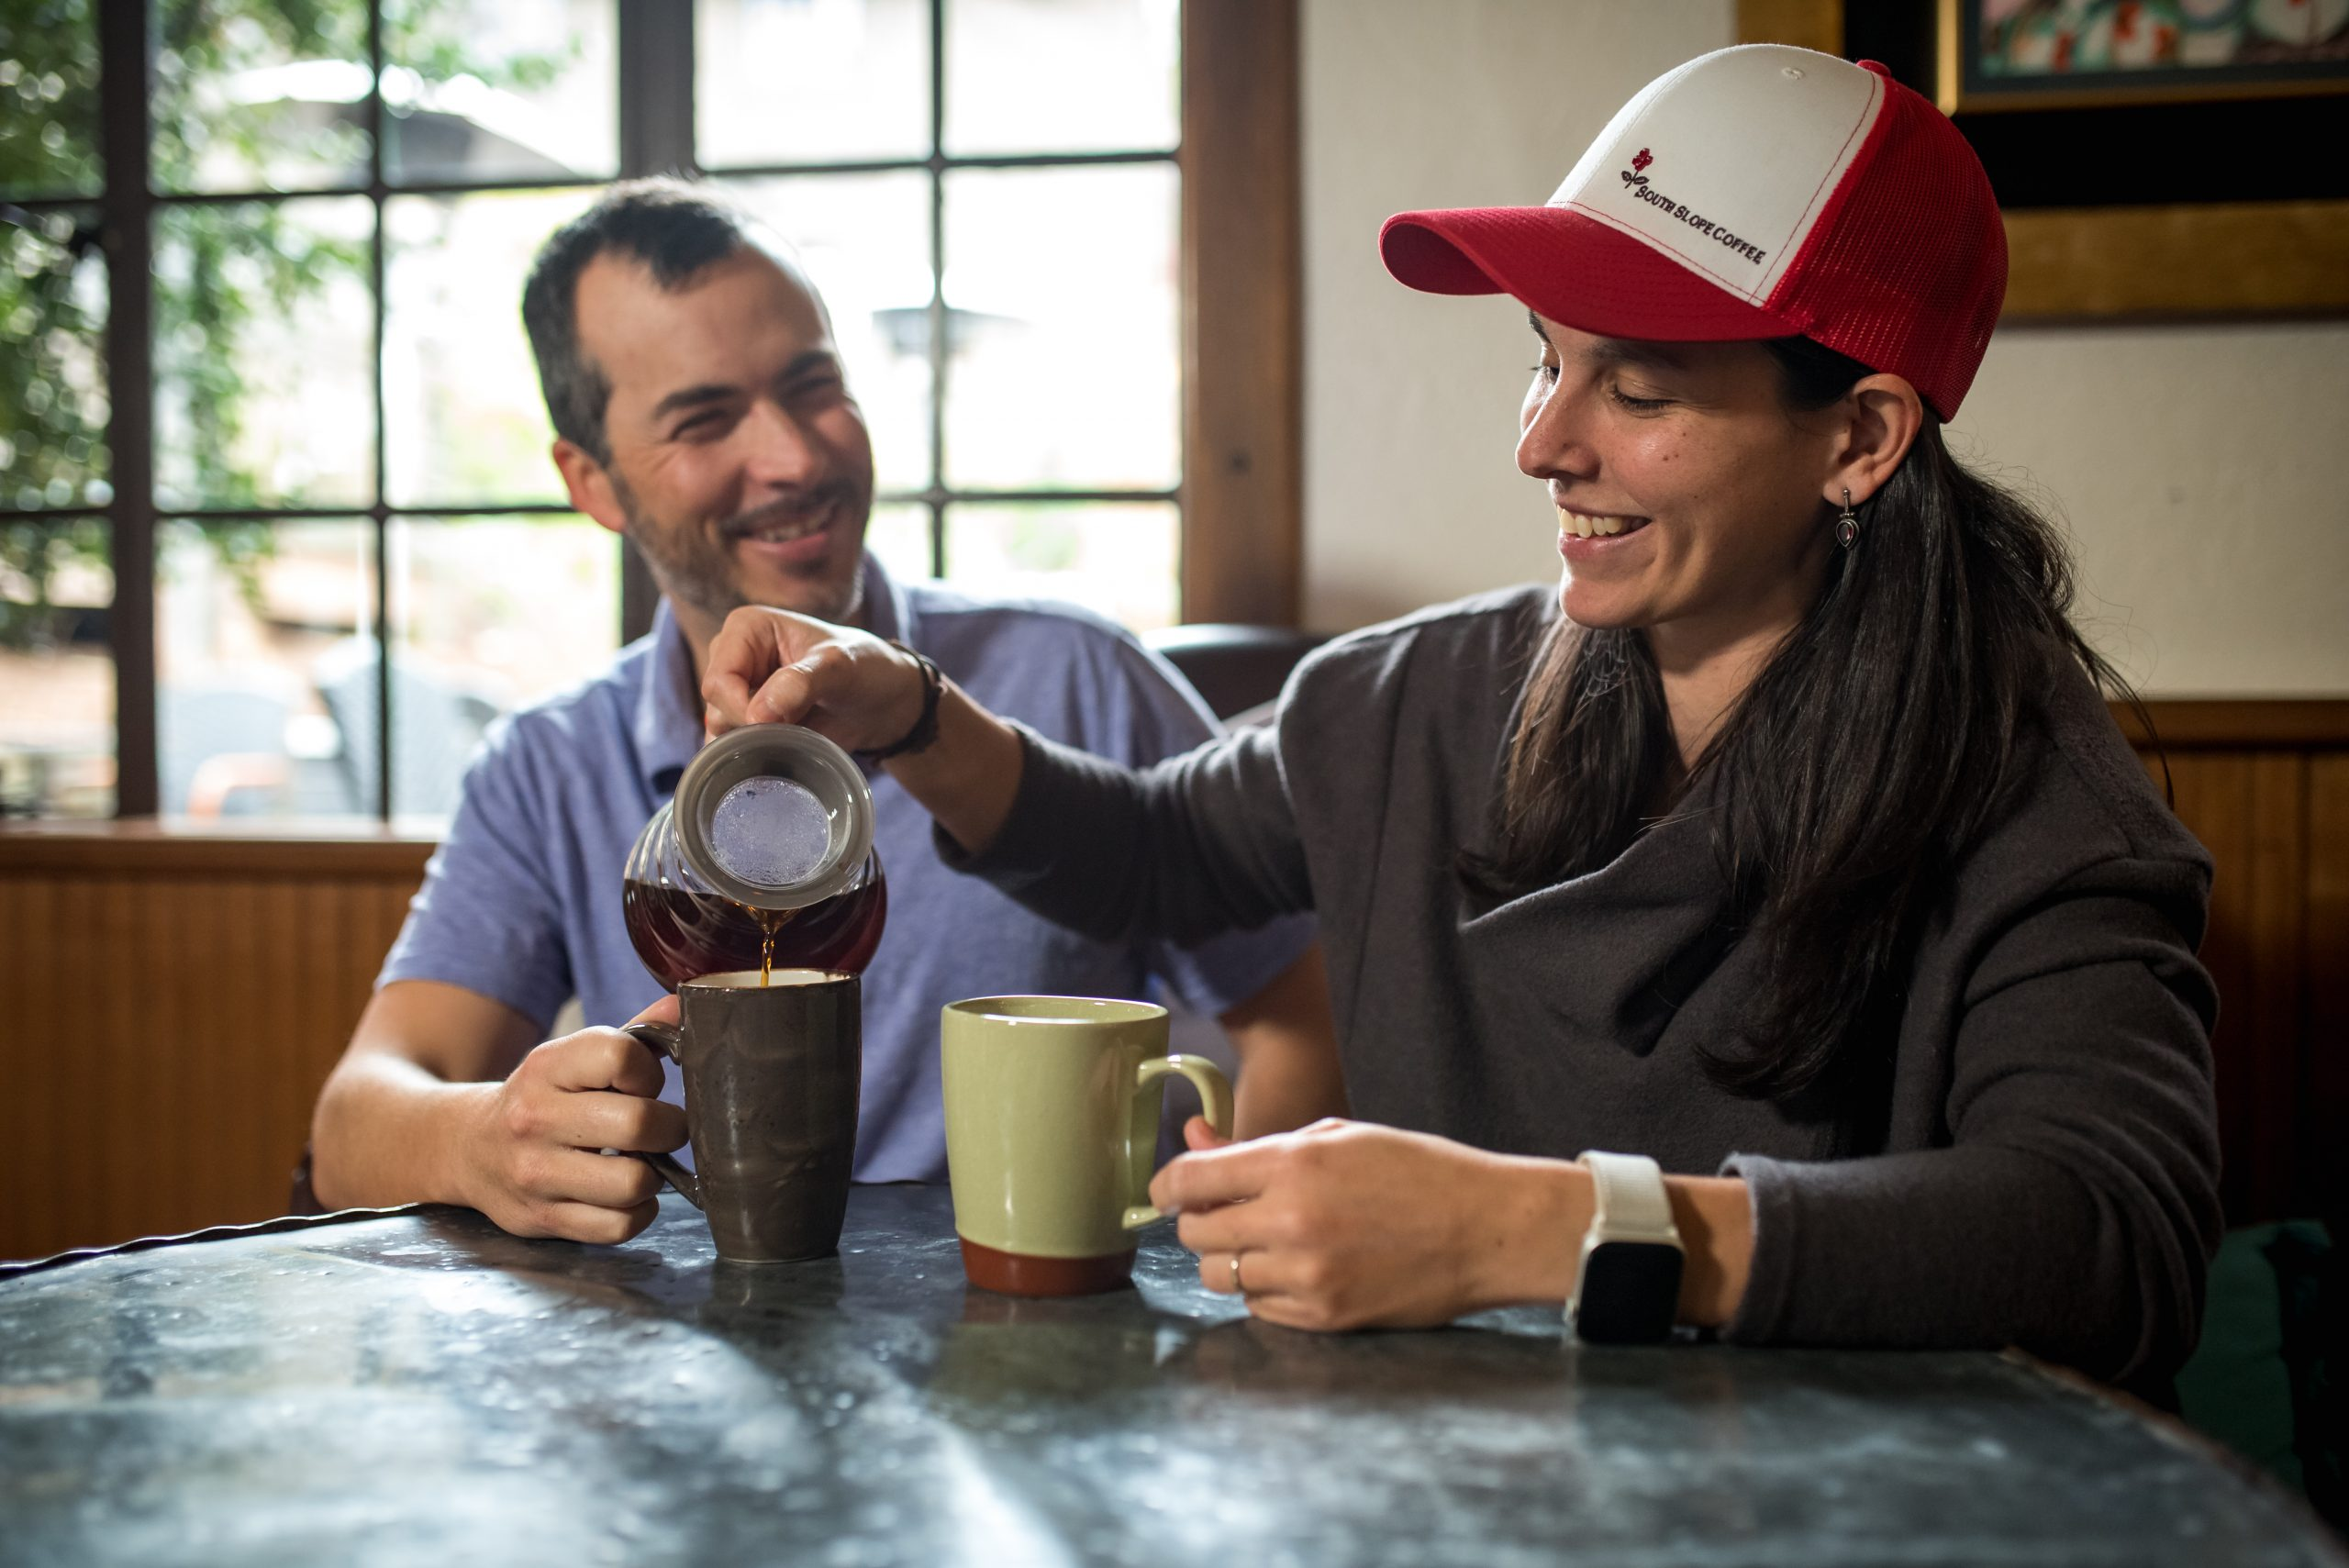 Luis And Cristina From South Slope Coffee Drinking Coffee Together